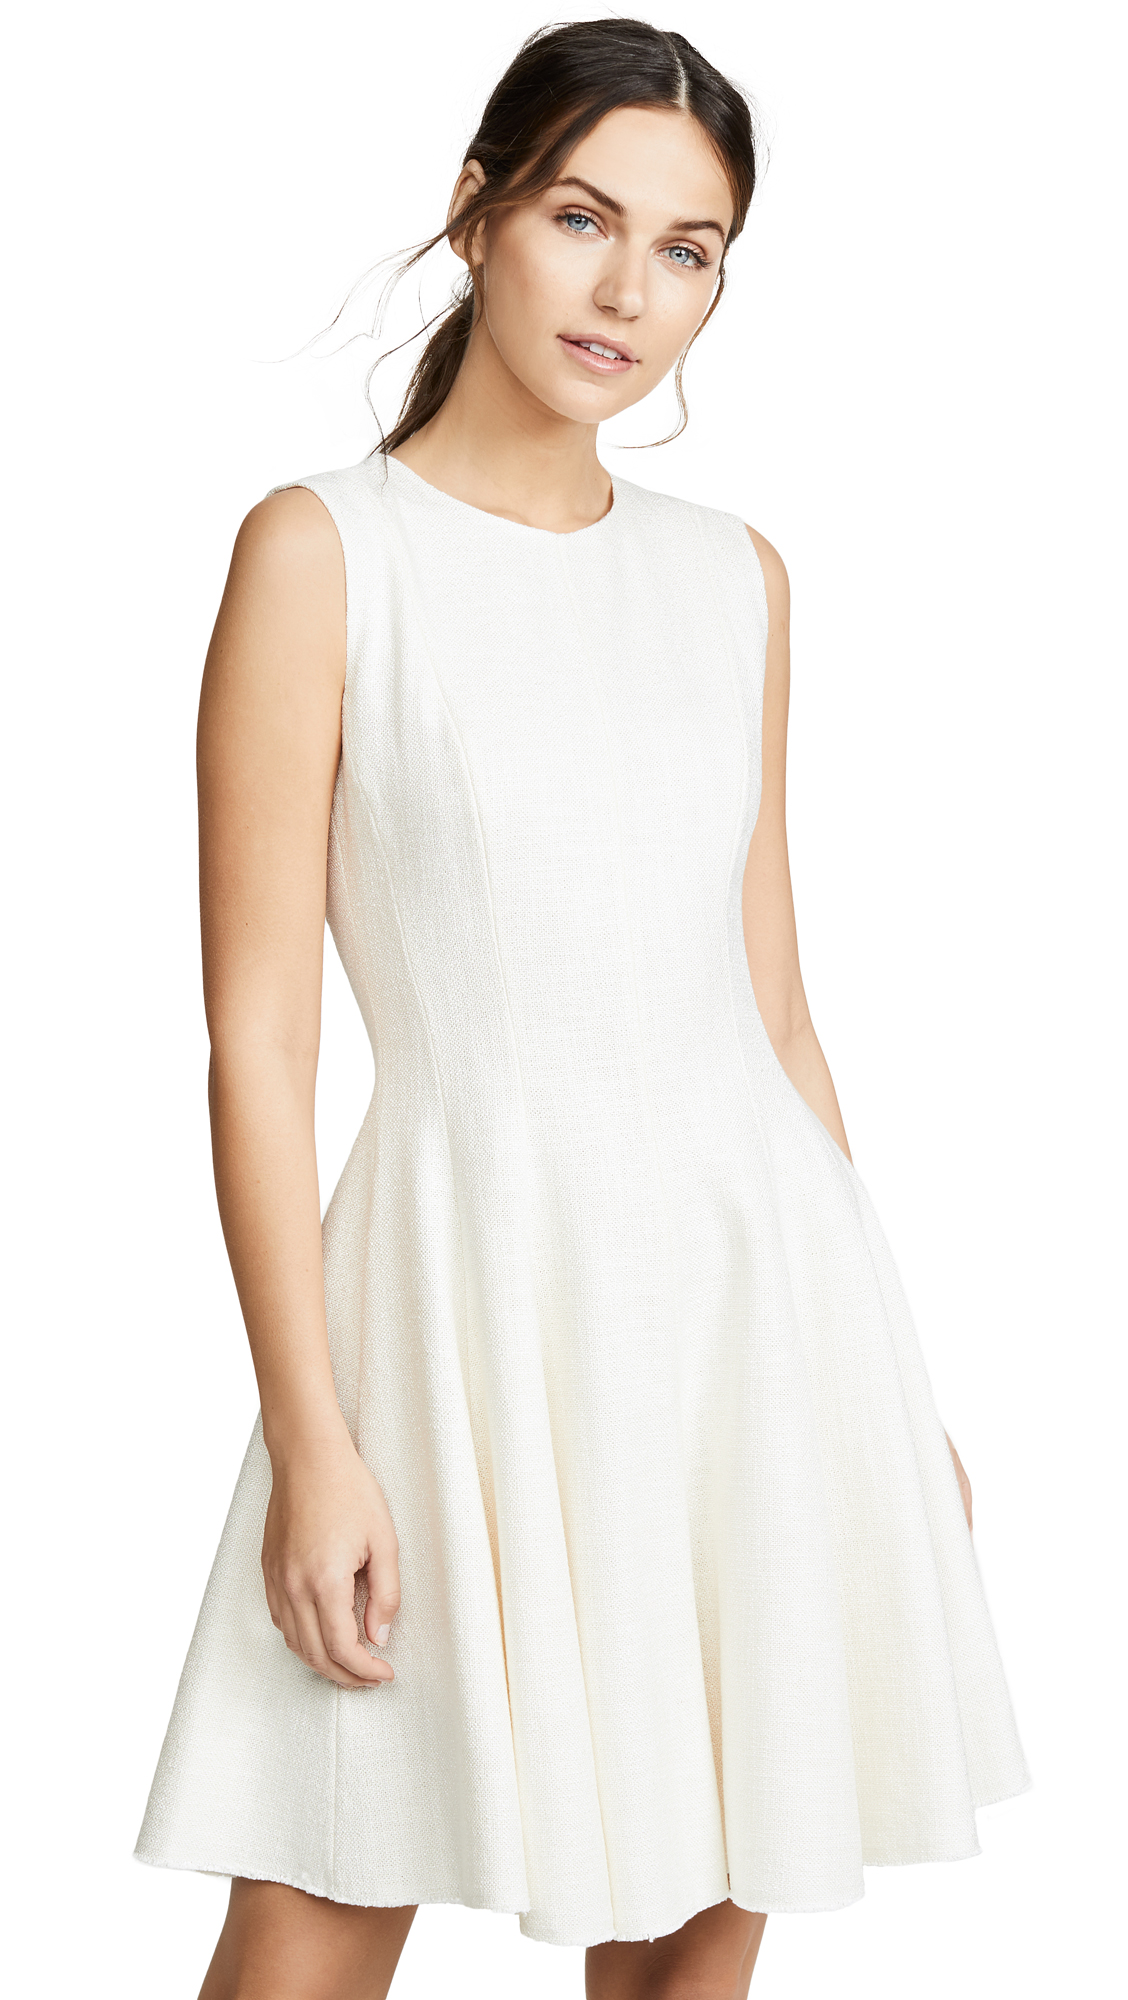 Theory Peplum Dress - Rice